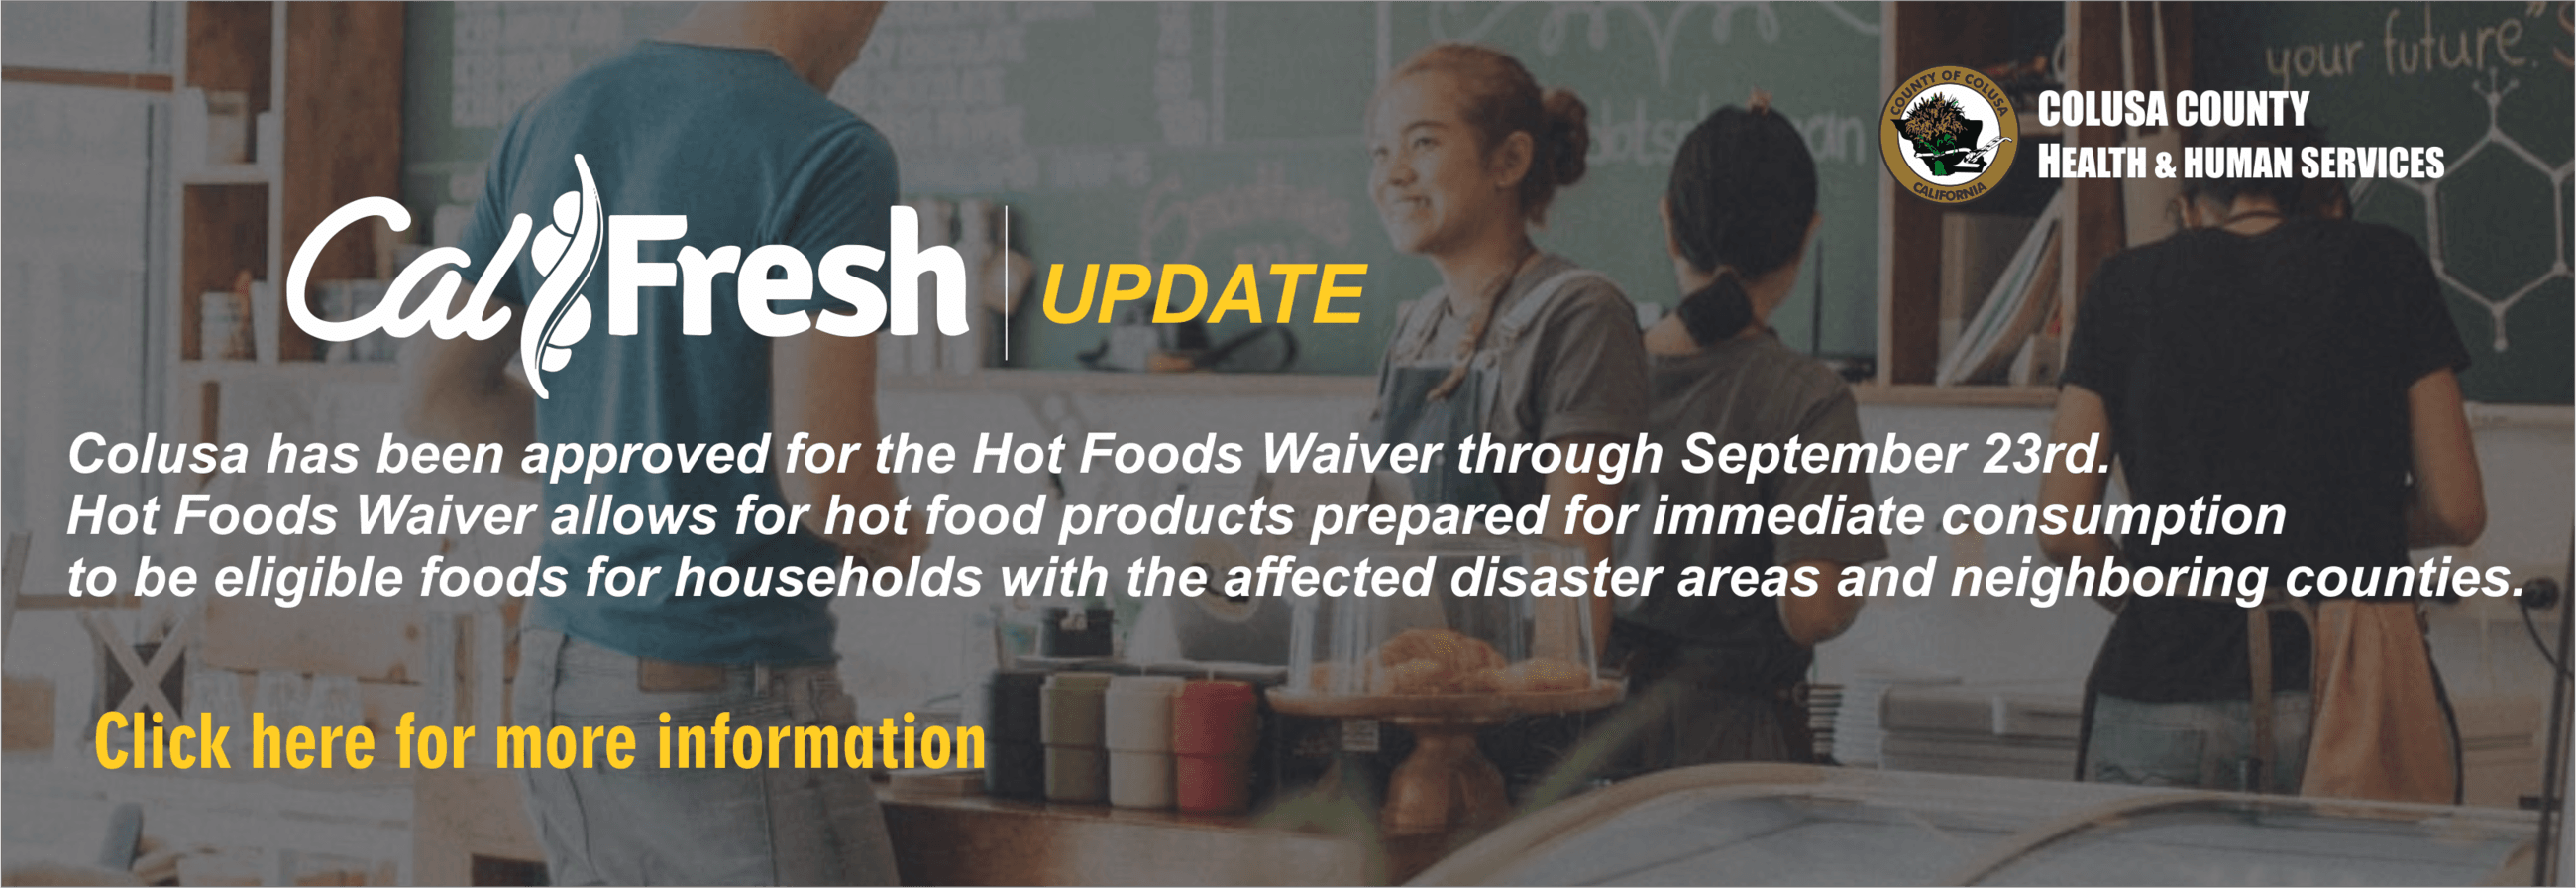 CalFresh Update - Hot Foods